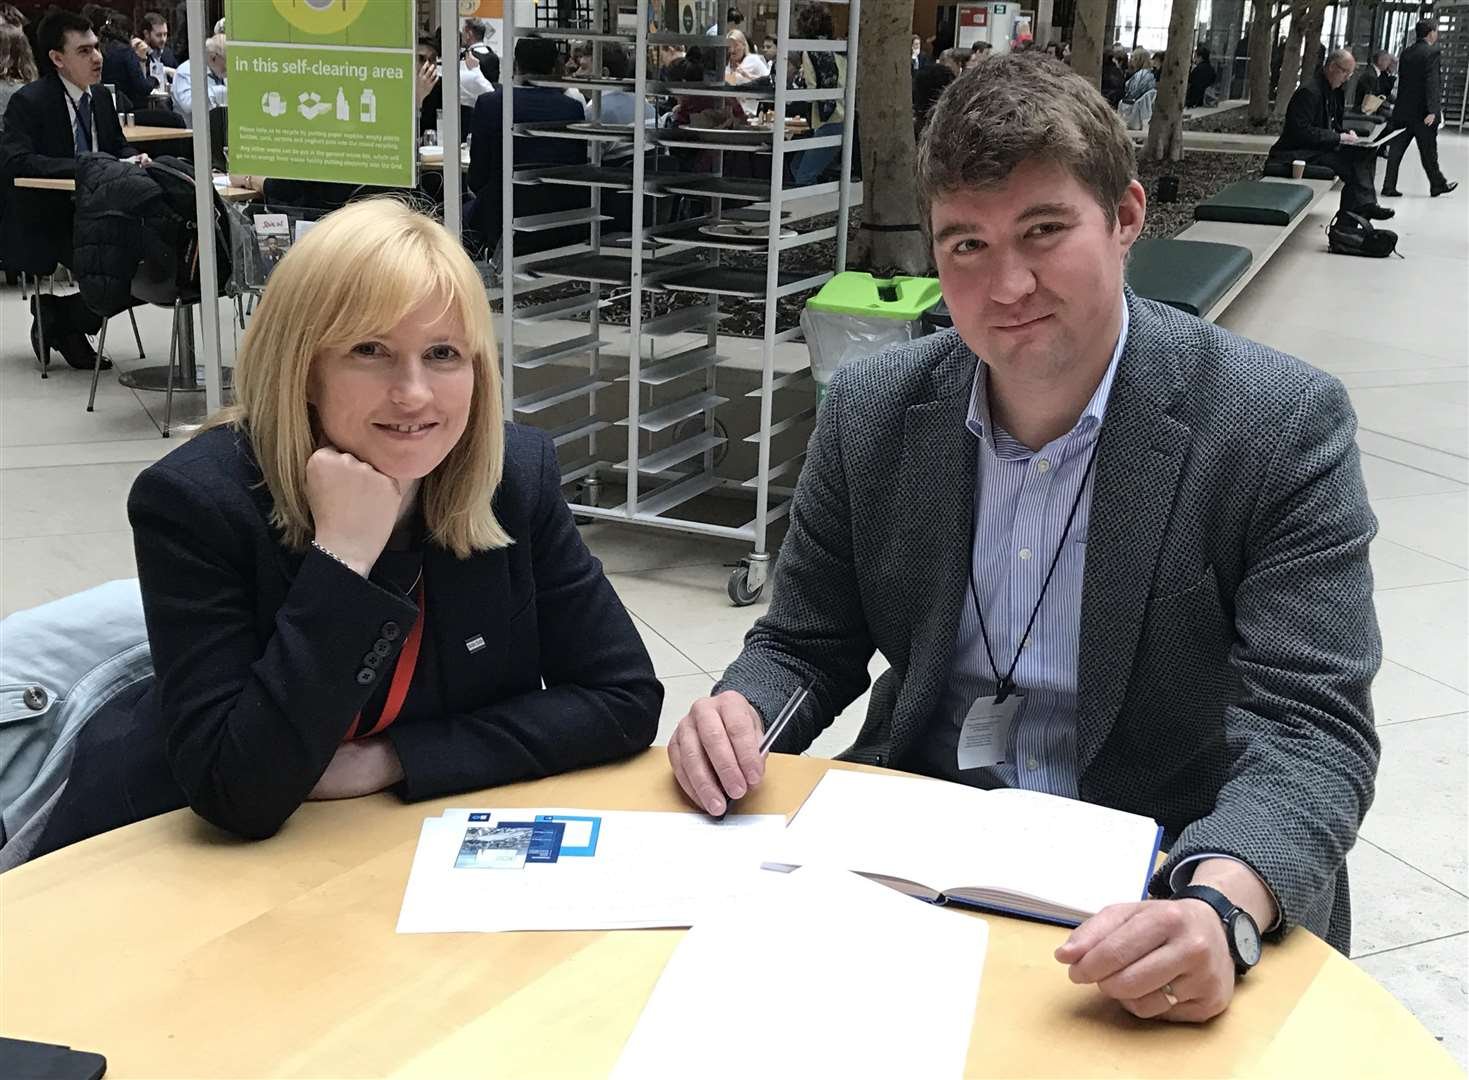 MP Rosie Duffield with Southeastern manager Chris Vinson, at Portcullis House, Westminster (1910752)